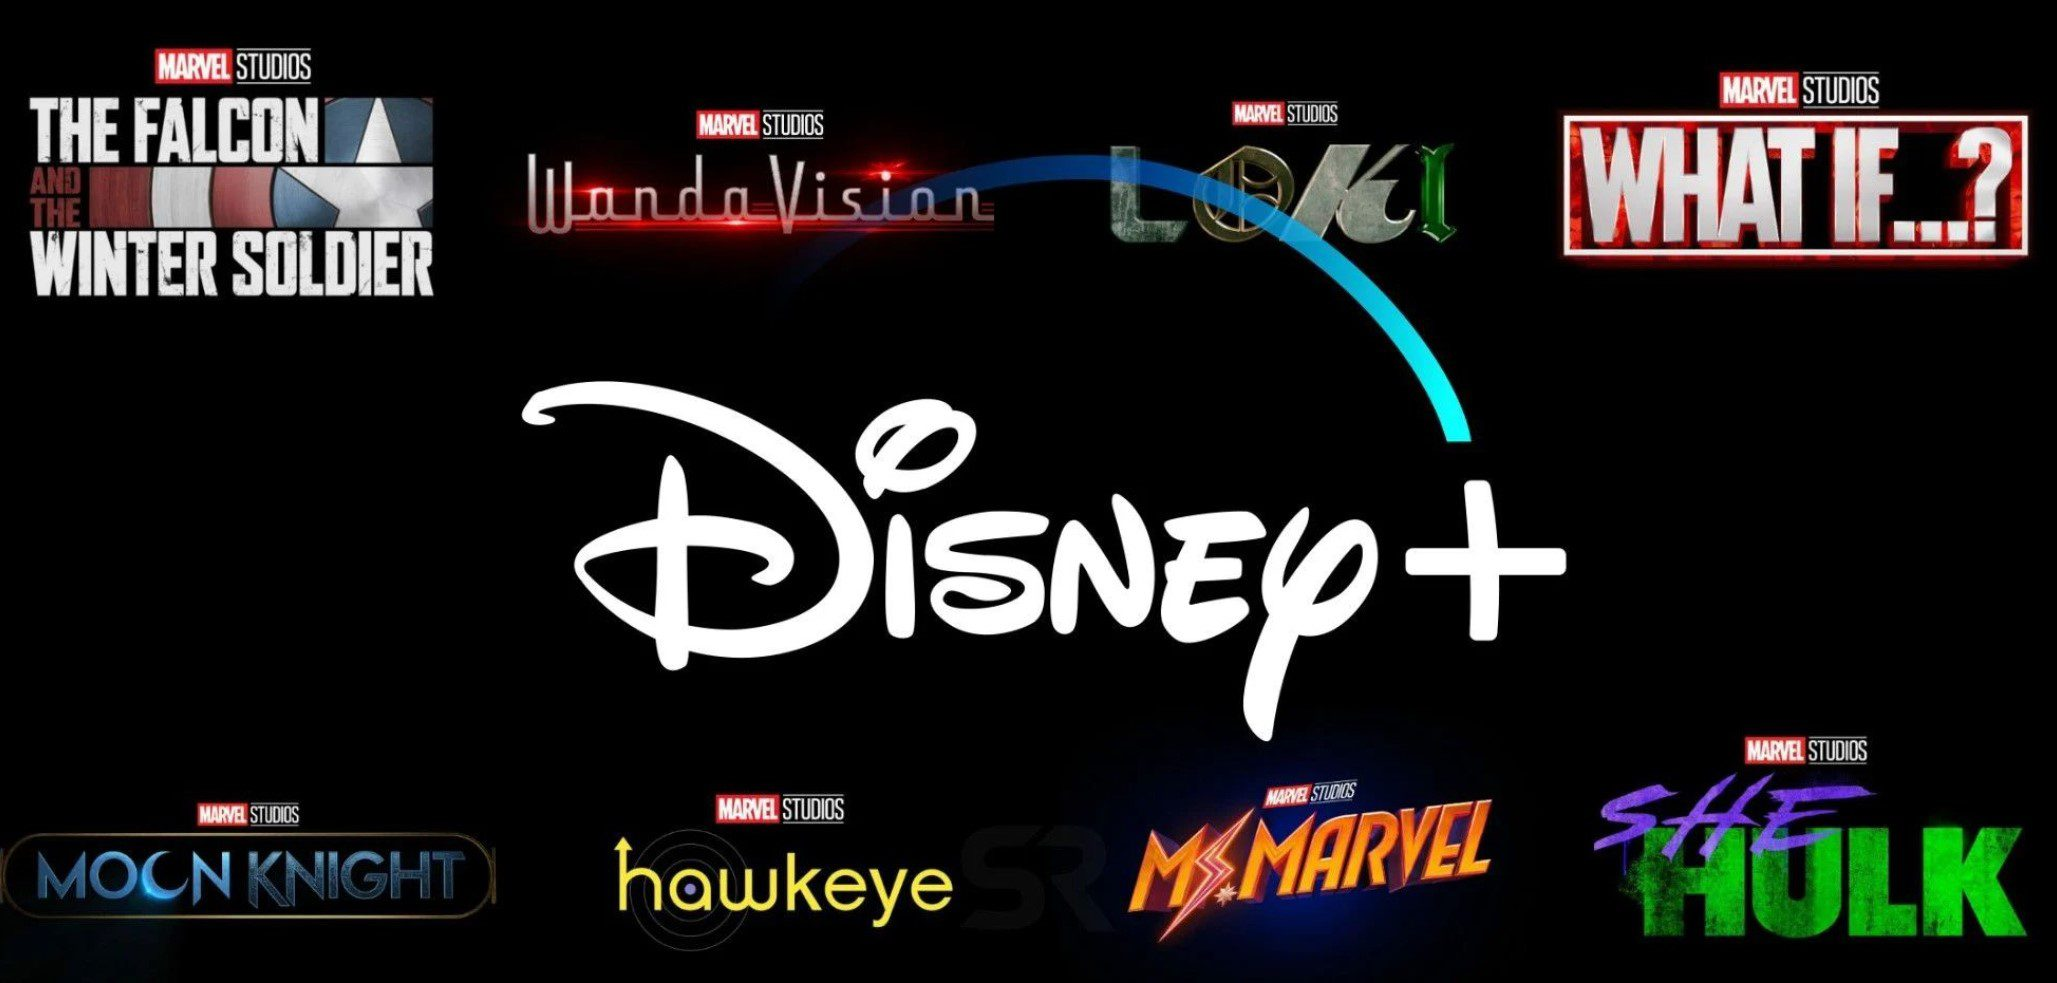 Report: Marvel Studios is prioritizing its shows for Disney+ right now